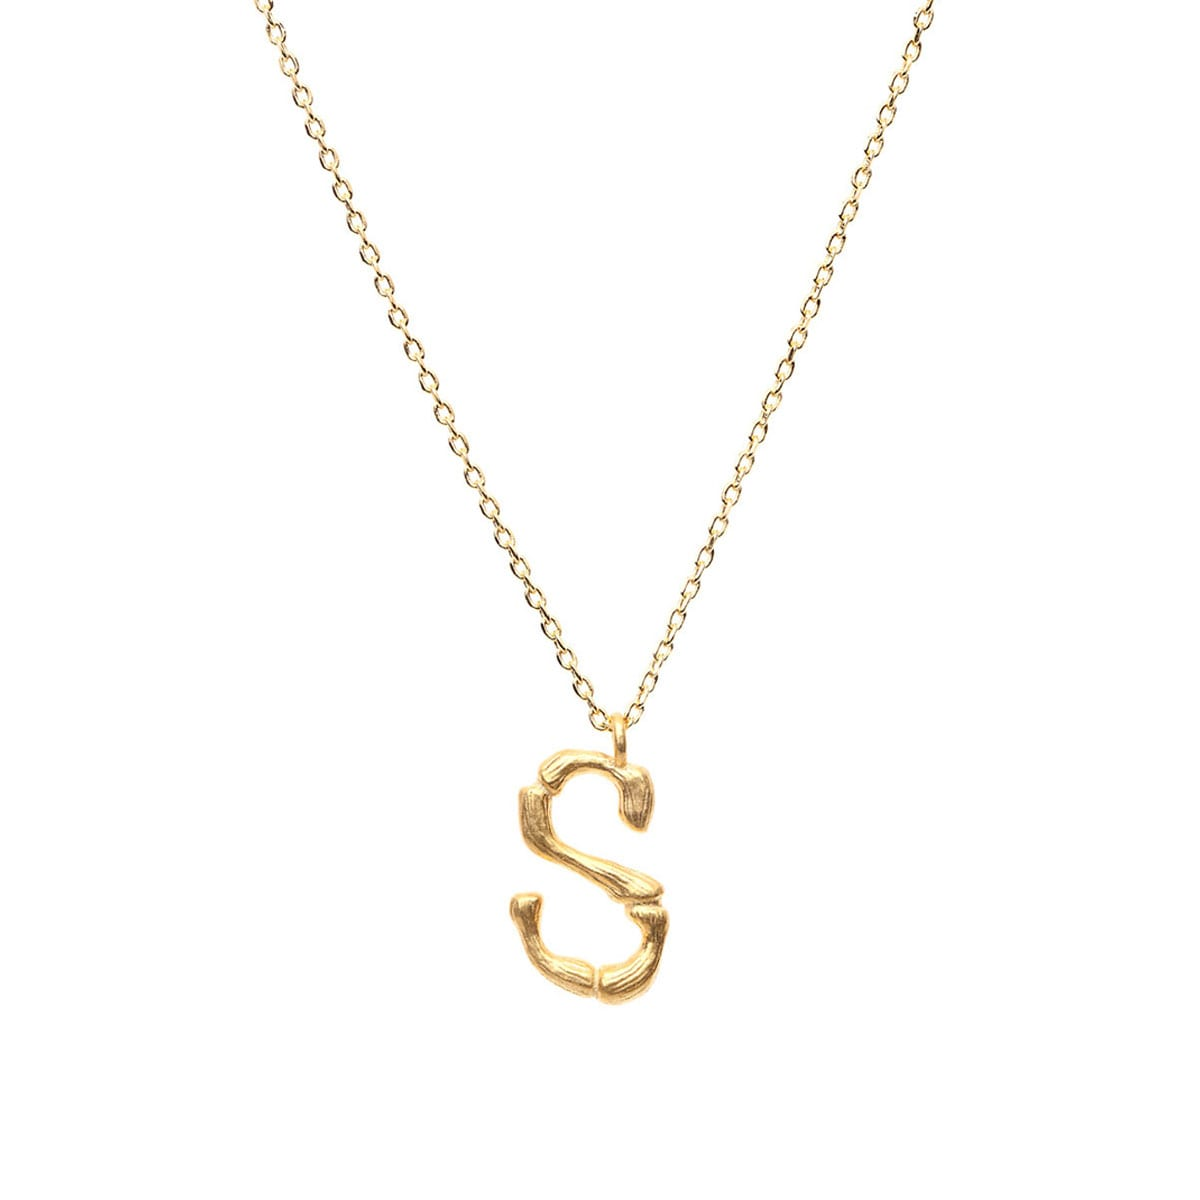 LETTER NECKLACE  24K GOLD PLATED